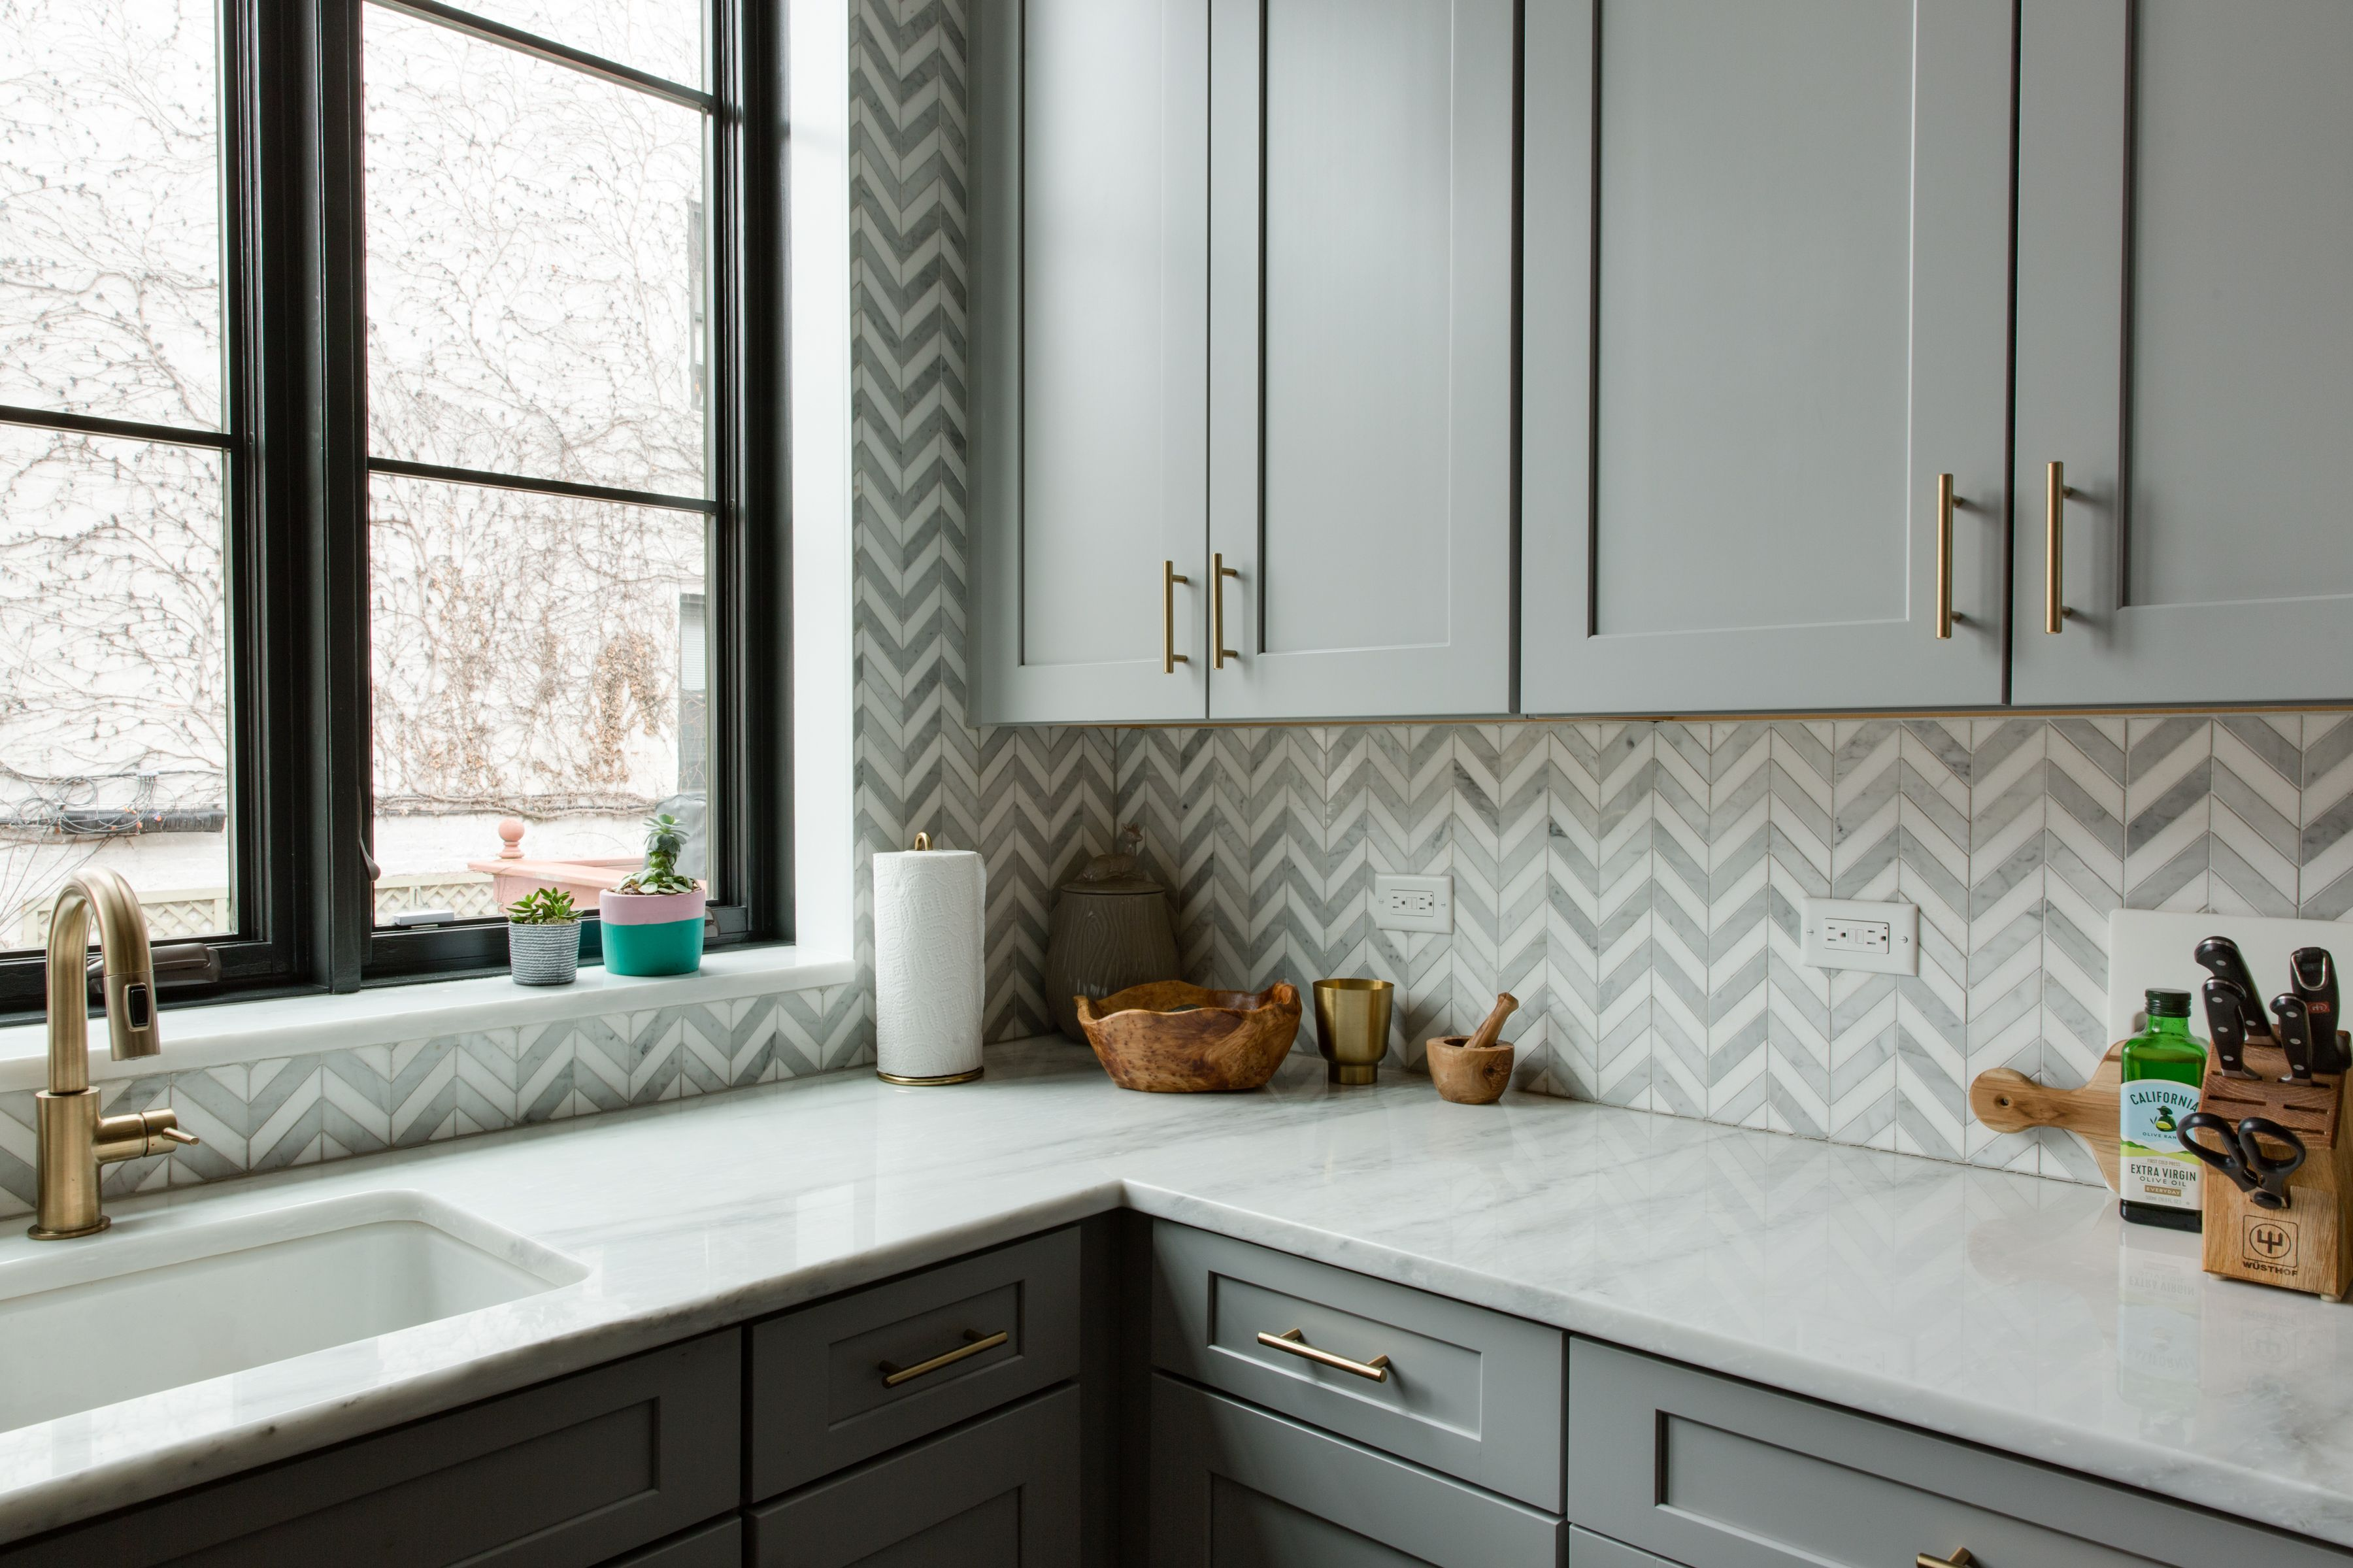 This Brooklyn Brownstone S Bold Remodel Is Extraordinary Kitchen Sink Remodel Kitchen Remodel Small Diy Kitchen Remodel